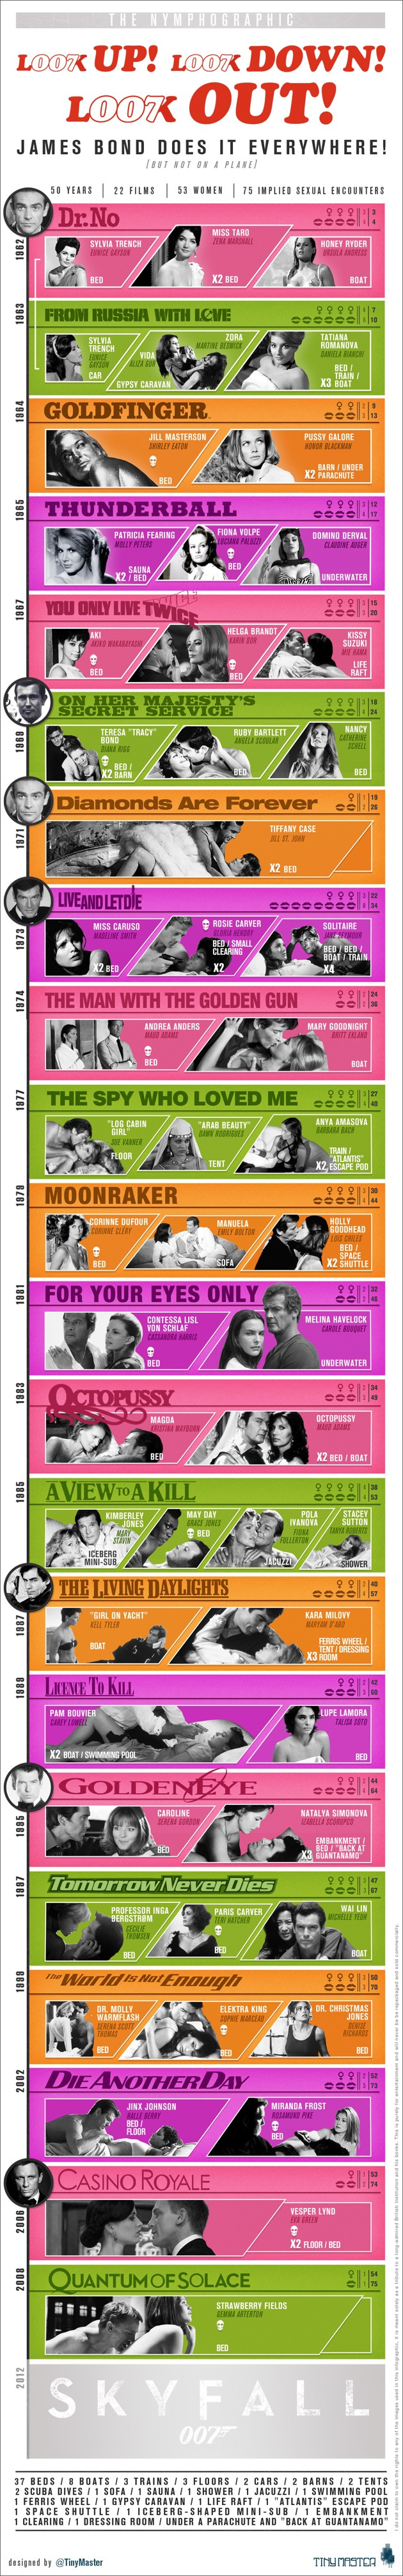 Celebrate Skyfall With A New Bond Infographic